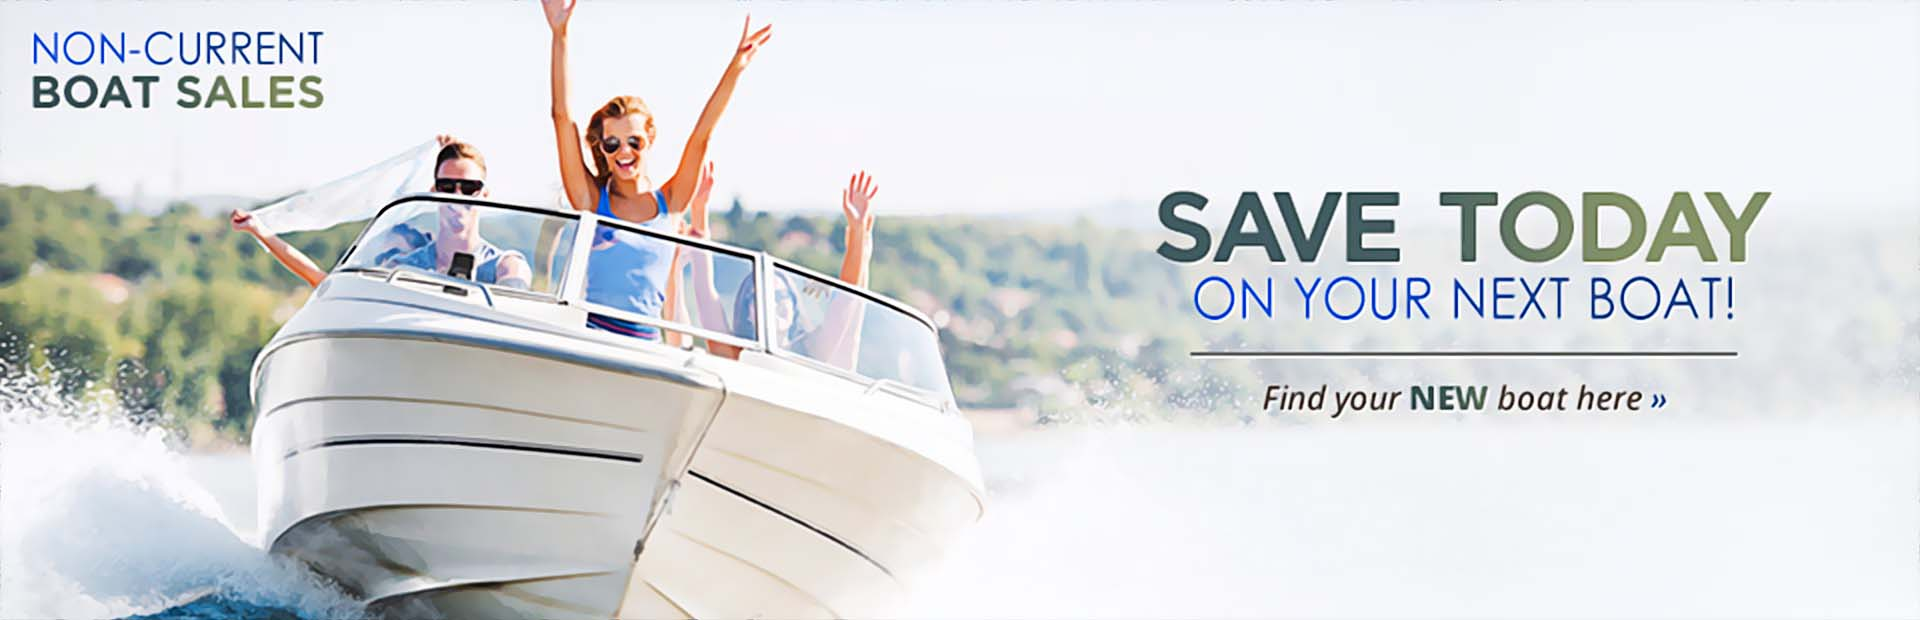 Non-Current Boat Sales: Save today on your next boat!